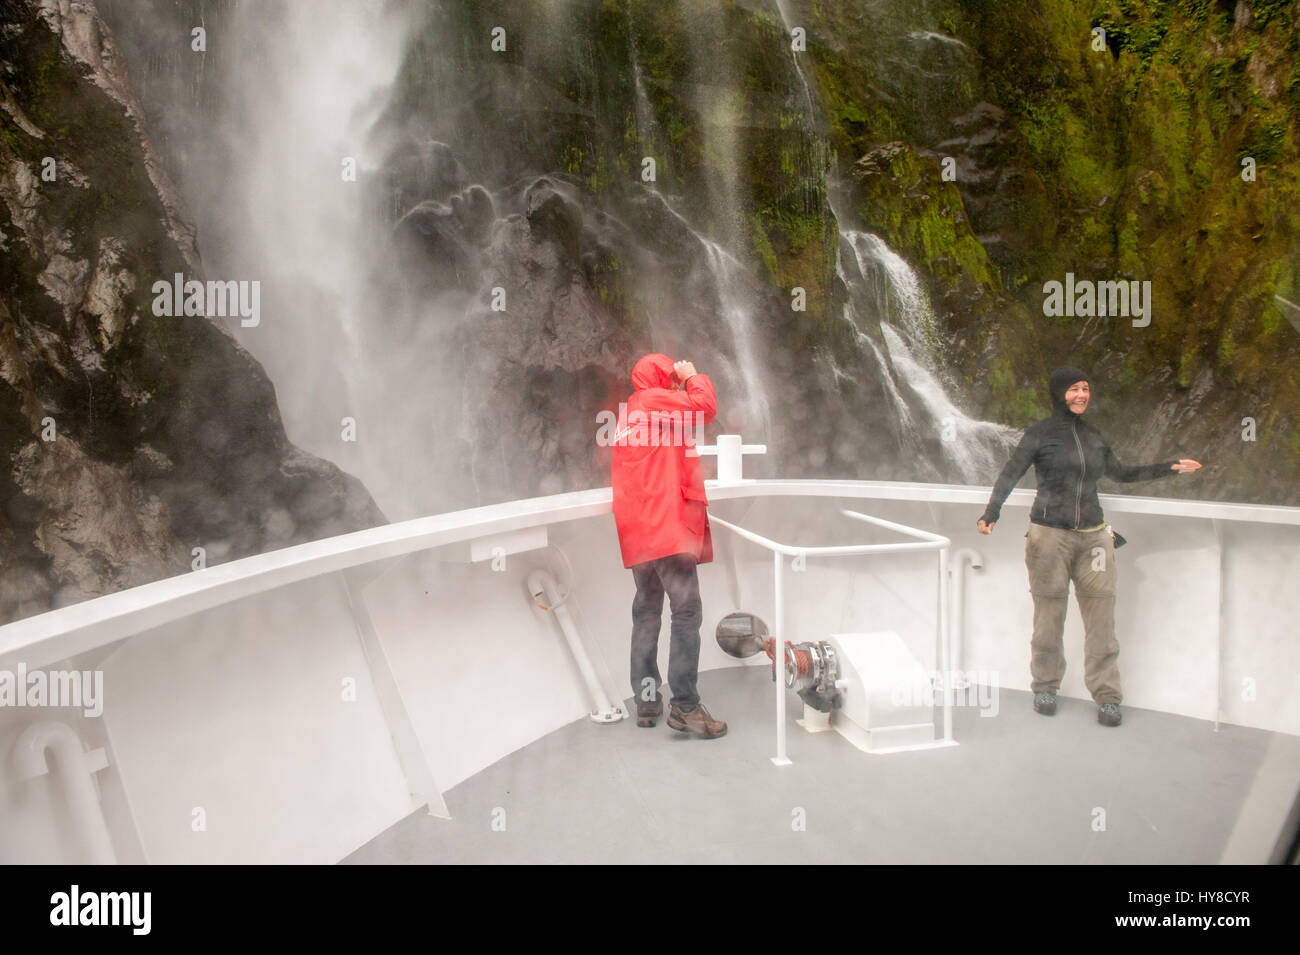 Tourists cruising near a waterfall in Milford sound, Fiordlands National Park, New Zealand Stock Photo